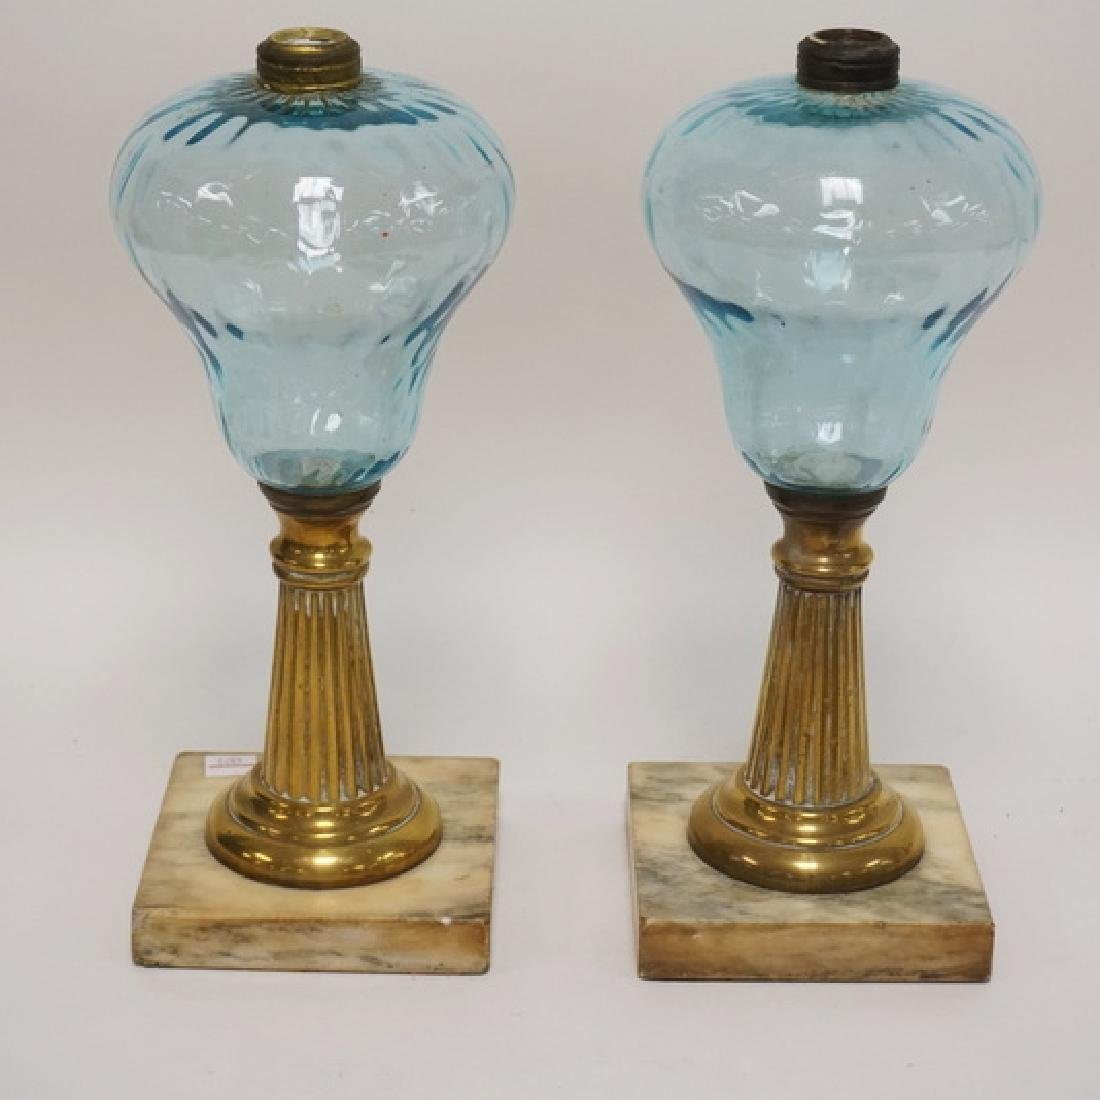 PAIR OF ANTIQUE BLUE GLASS OIL LAMPS WITH BRASS AND